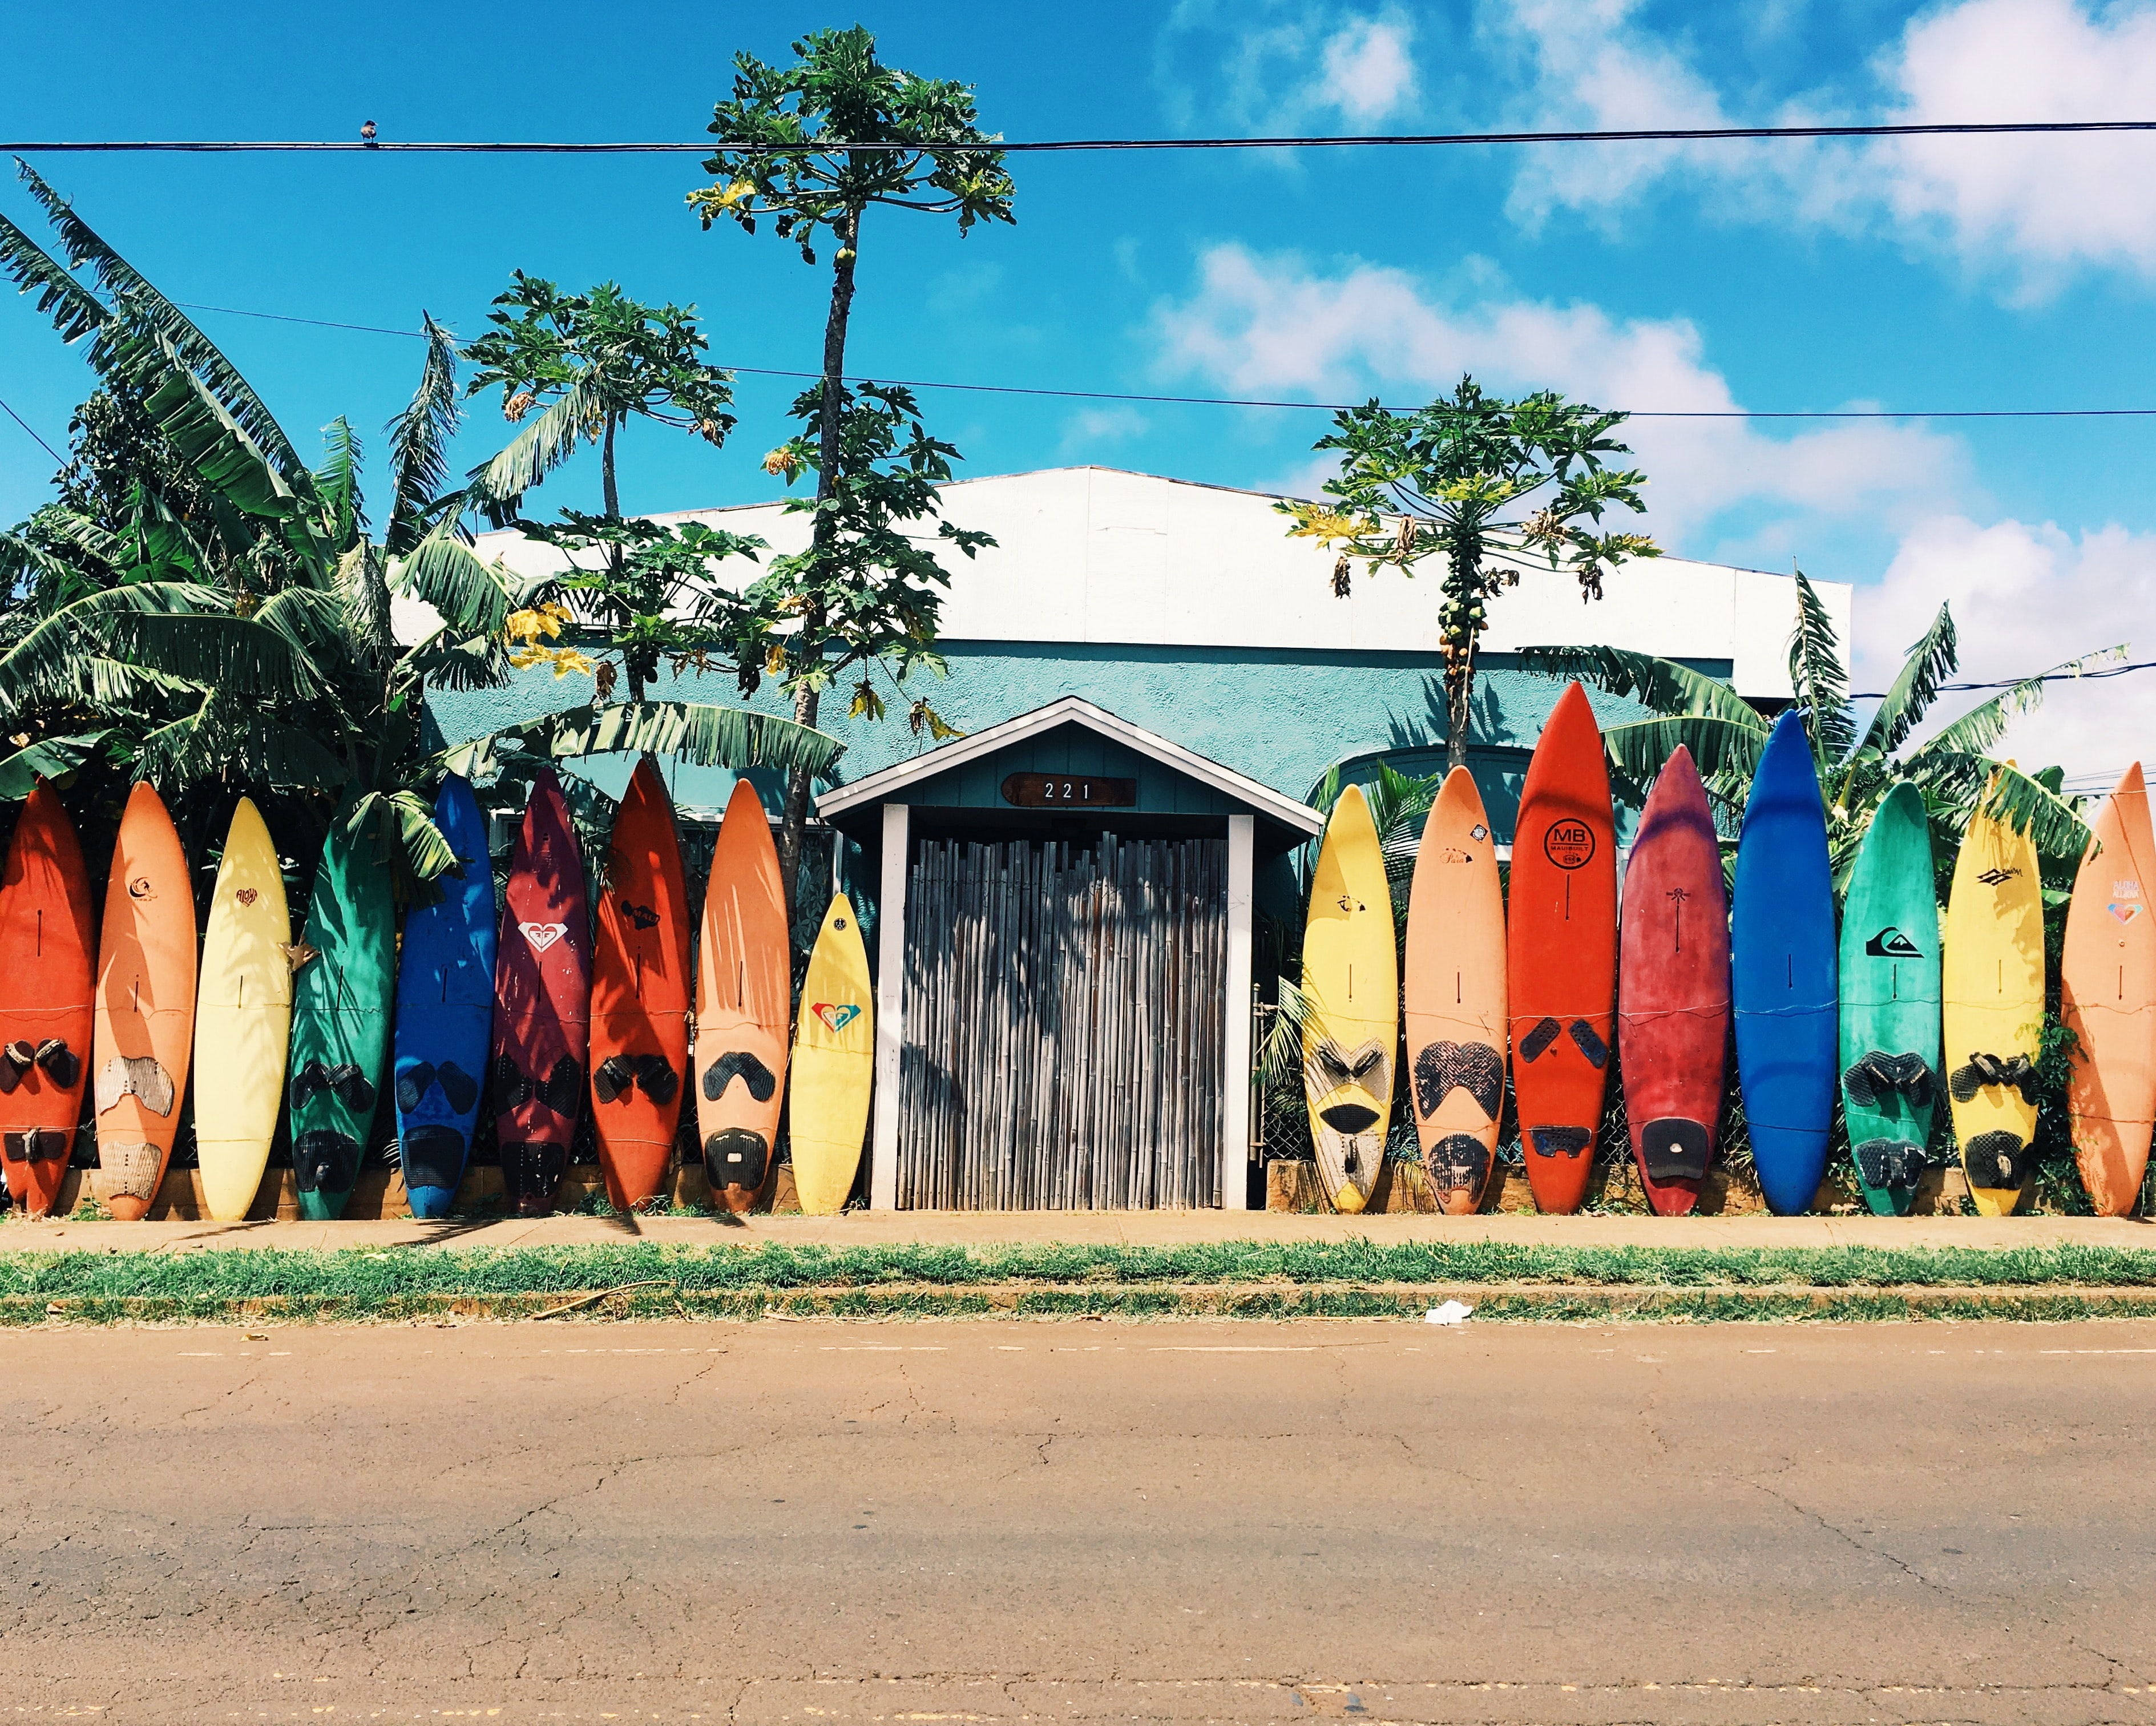 Colorful surfboards in front of the house in Maui